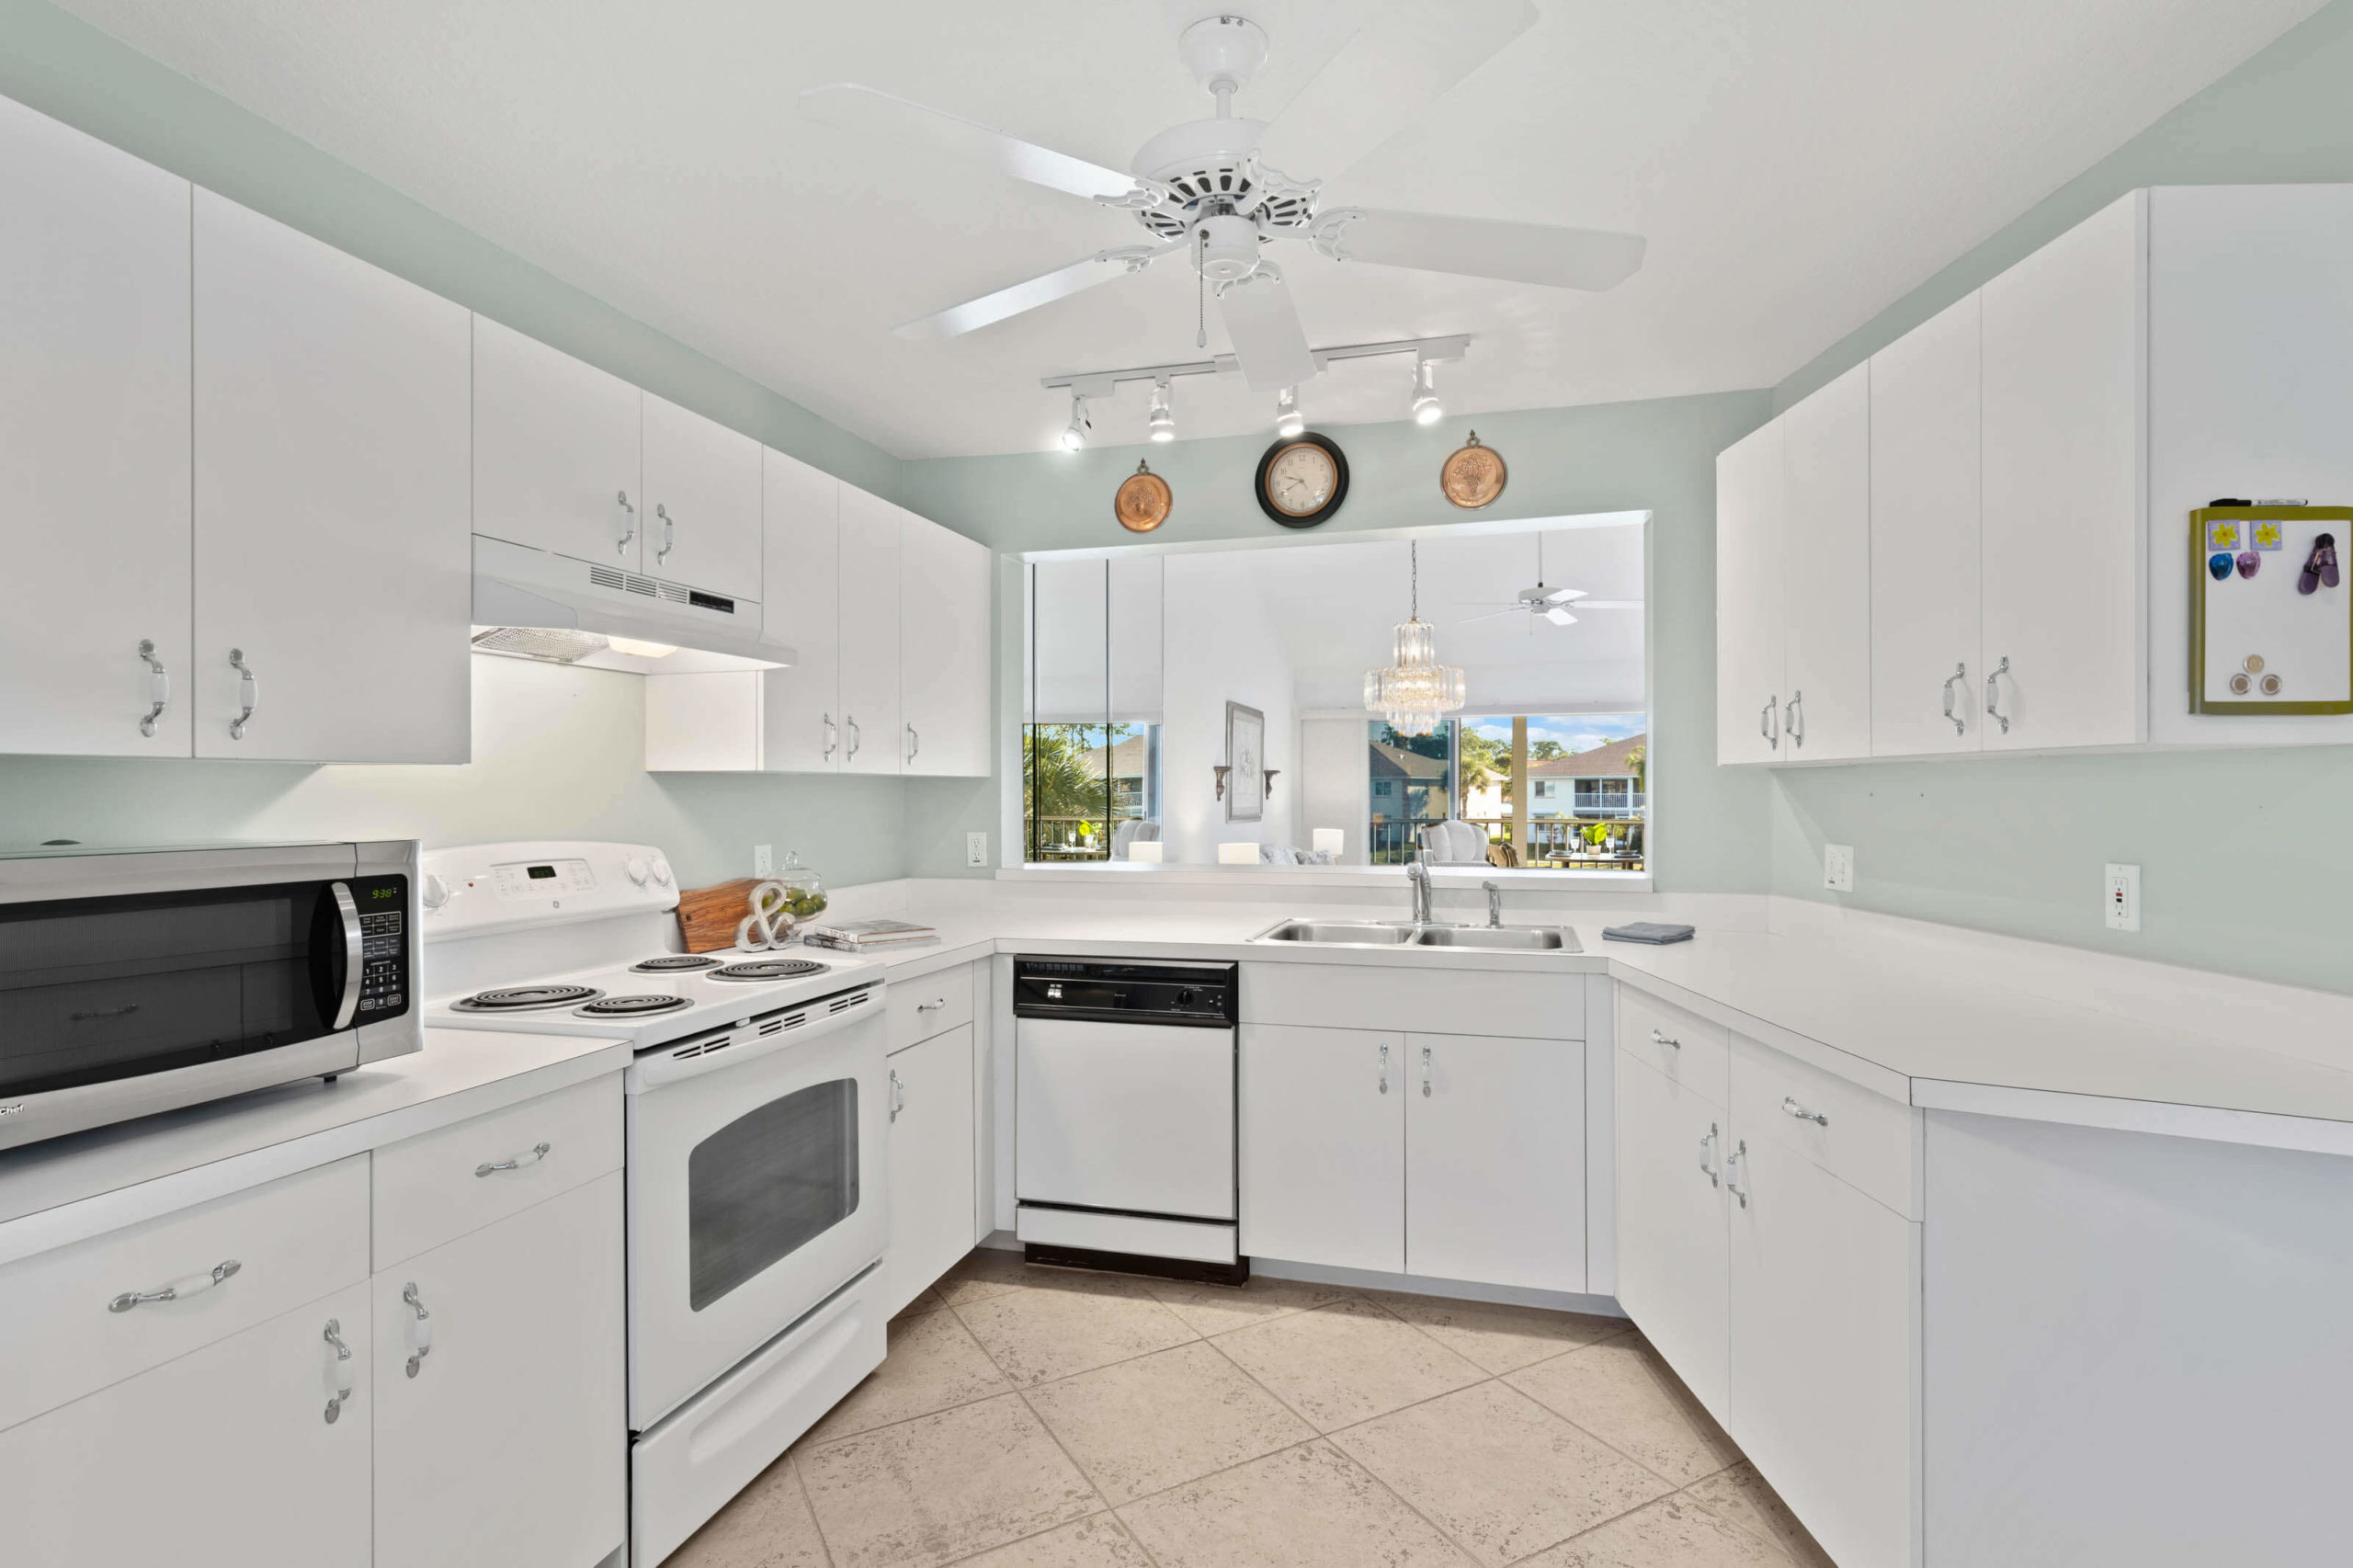 452 Belina Dr 1302 - Kitchen